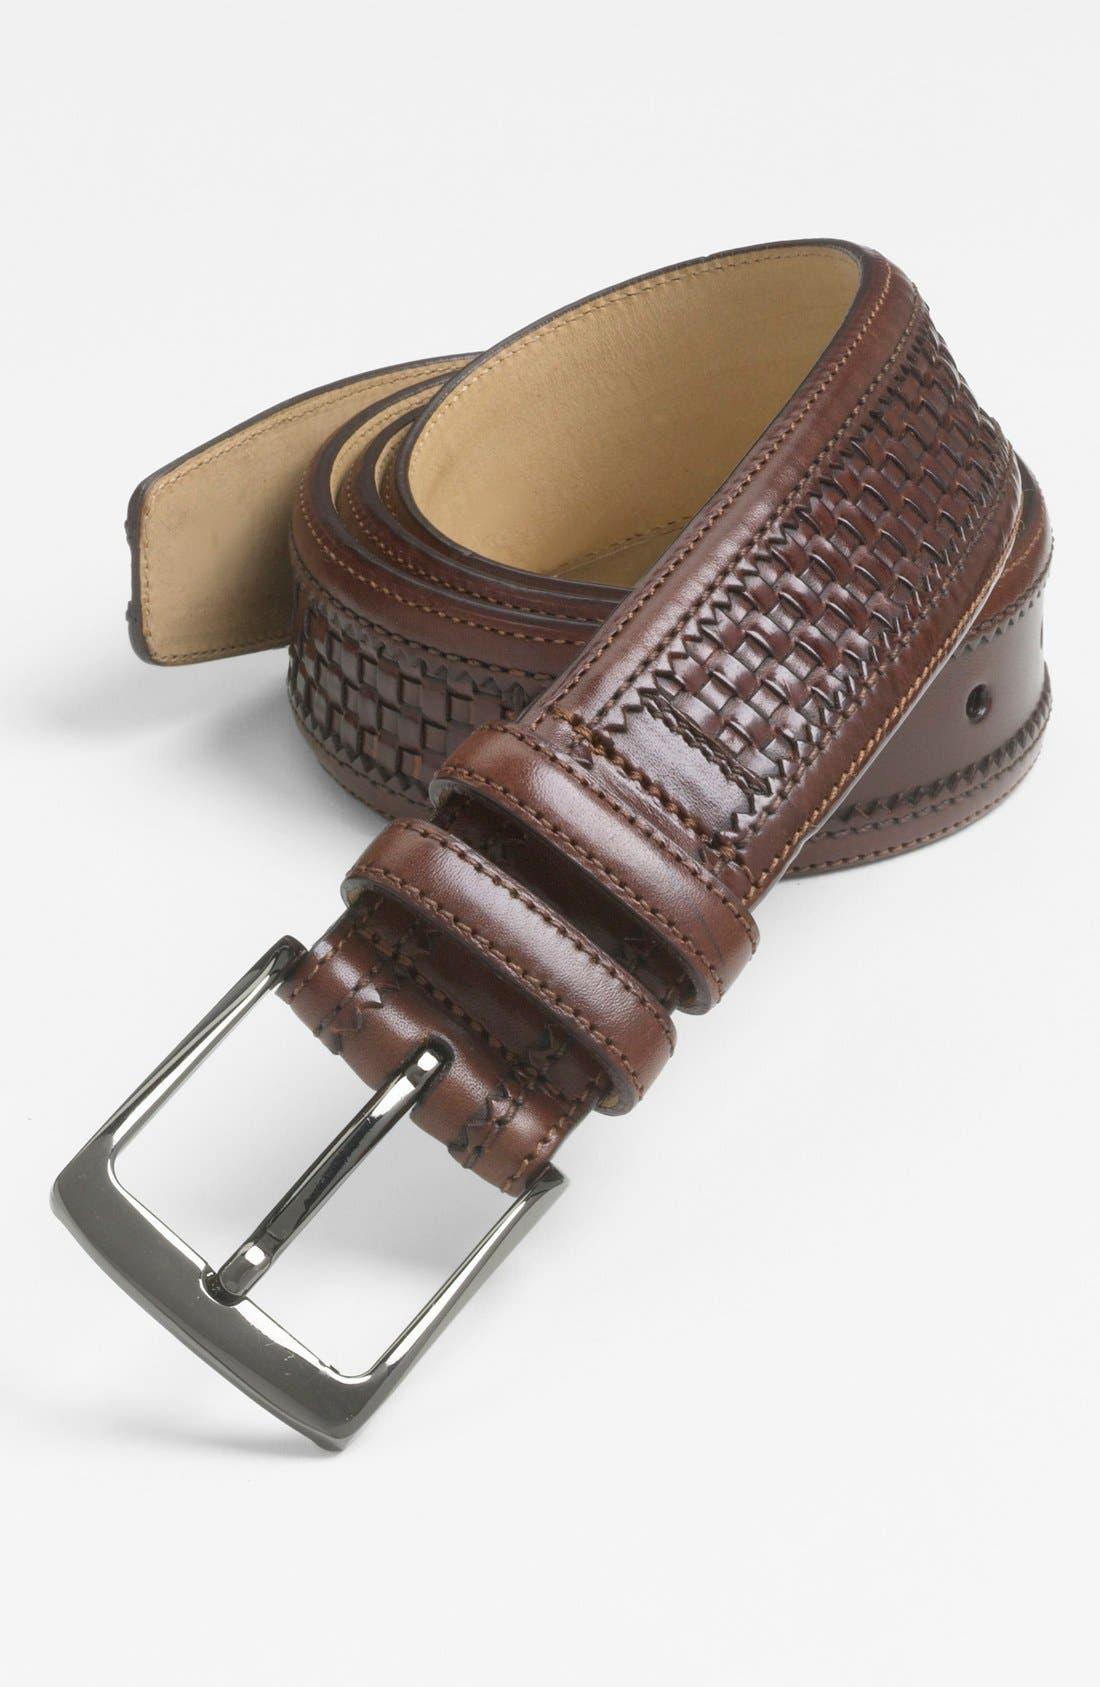 Alternate Image 1 Selected - Mezlan 'Parma Dama' Woven Leather Belt